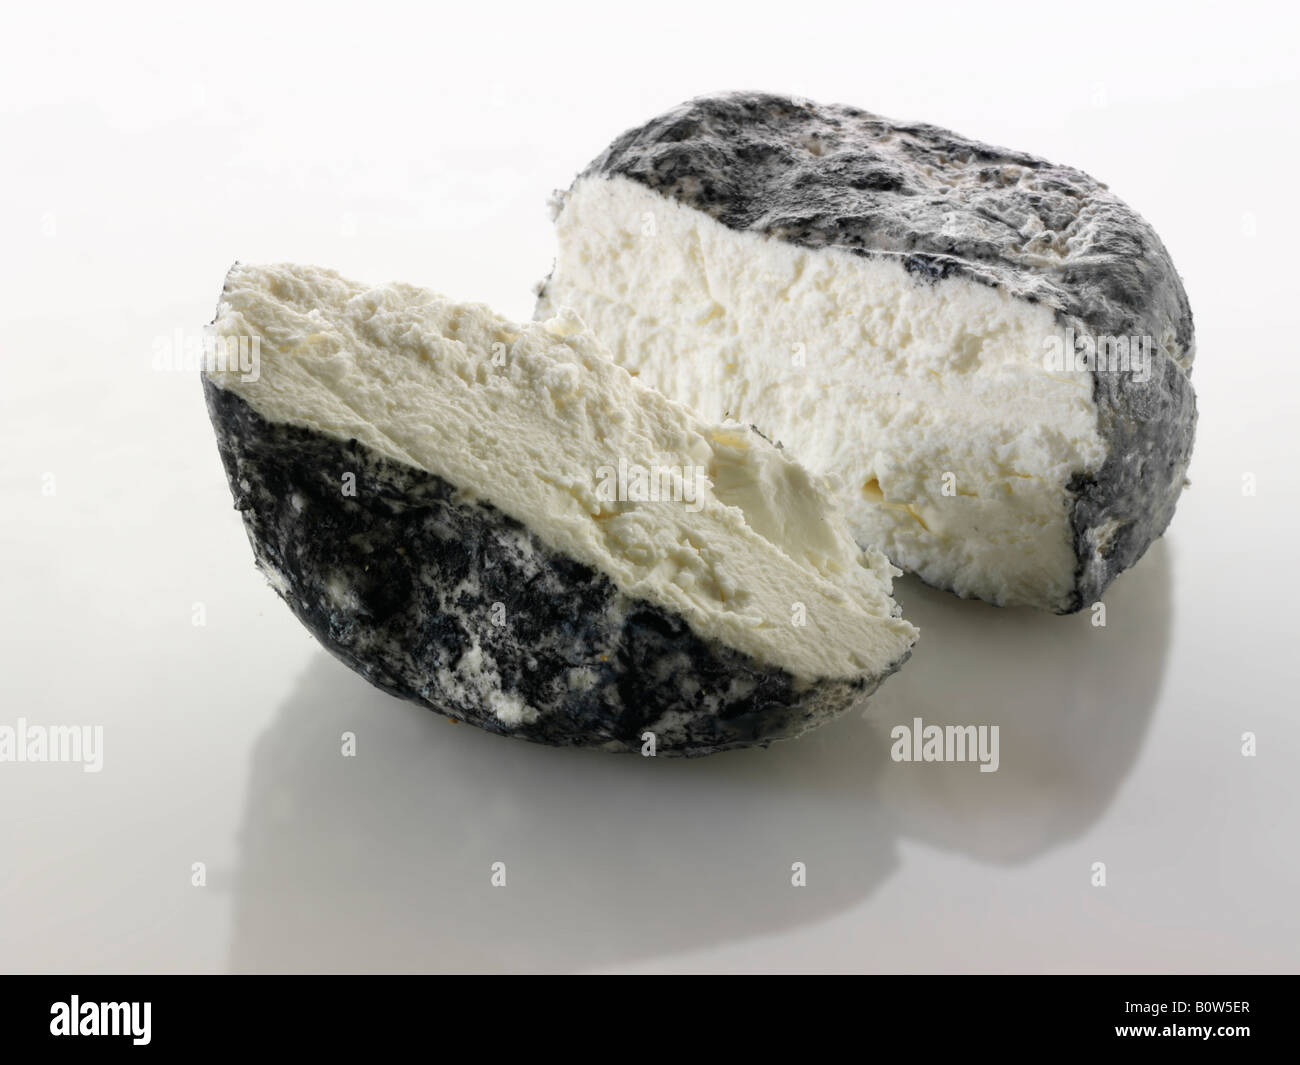 Cinder Chevre cheese from France on a white background - Stock Image